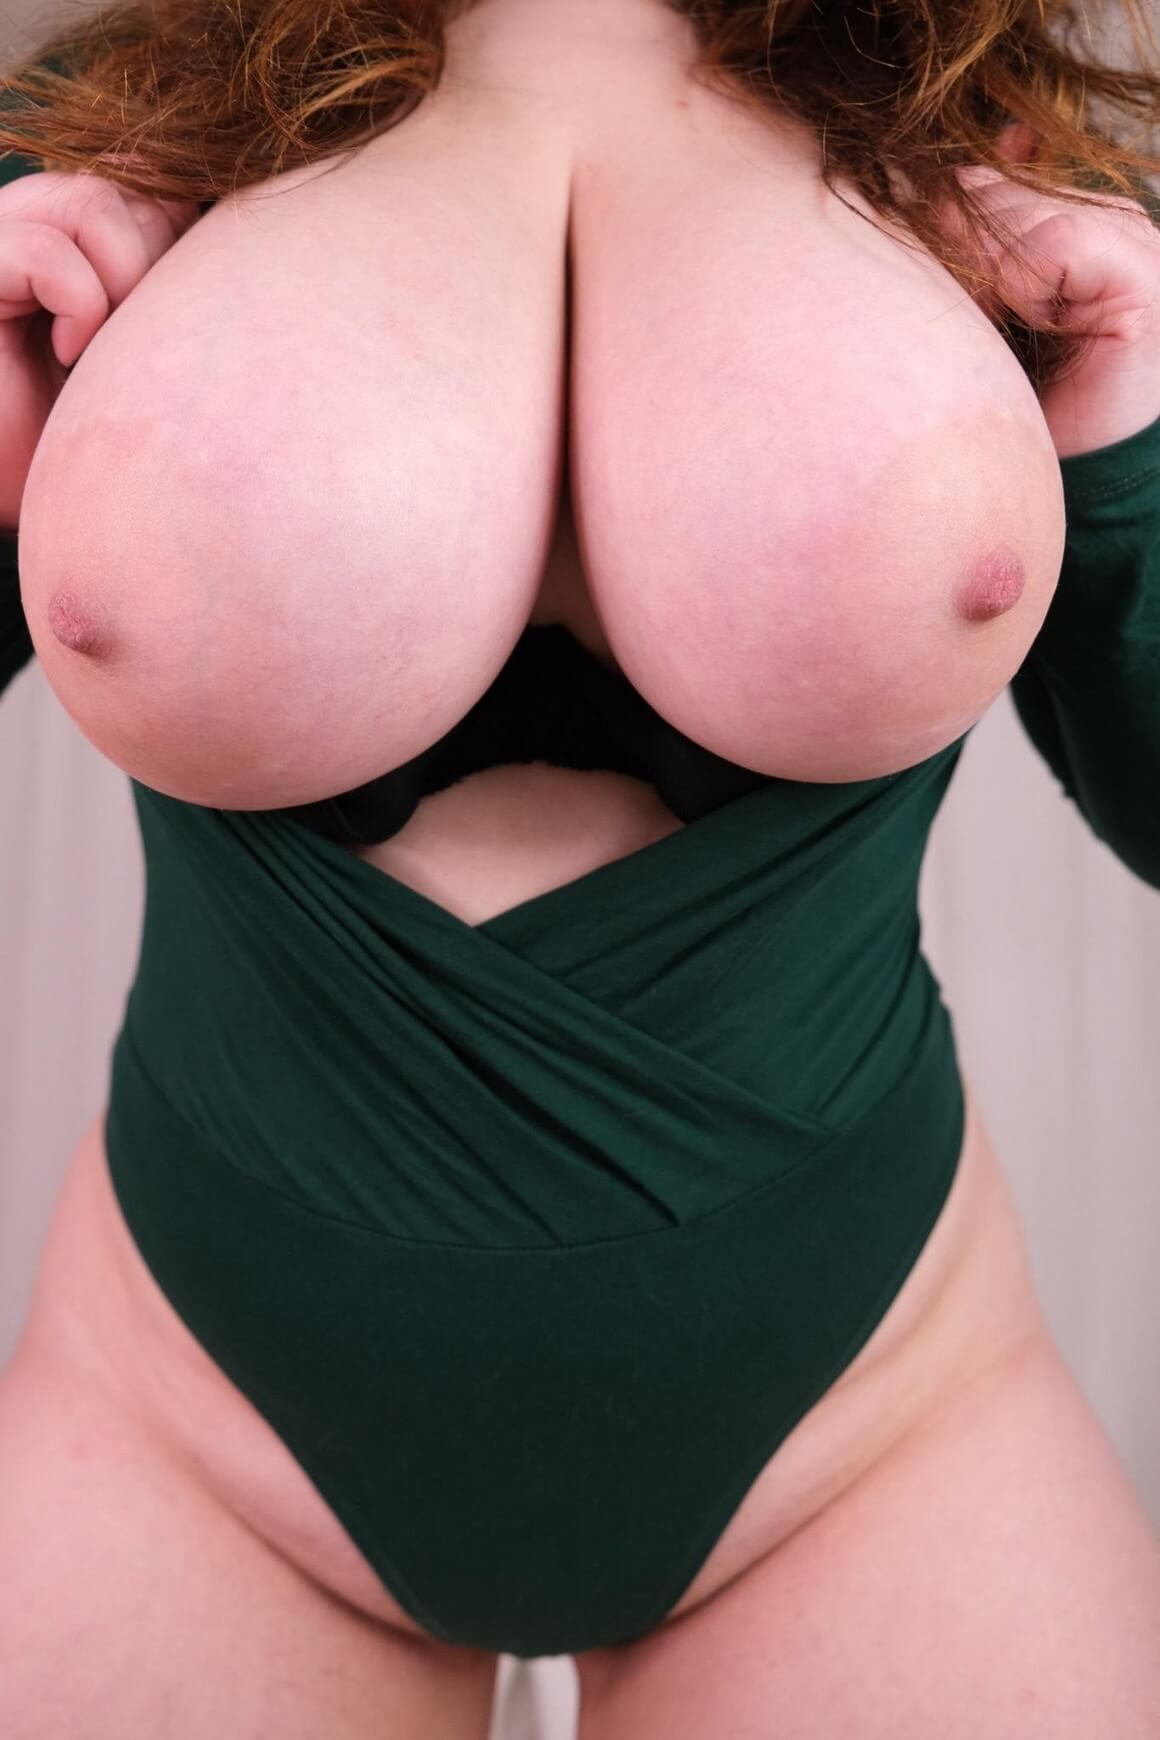 Full freontal nudity with big boobs She Has Big Boobs To Bury Your Face In 4 Pics Nudesia